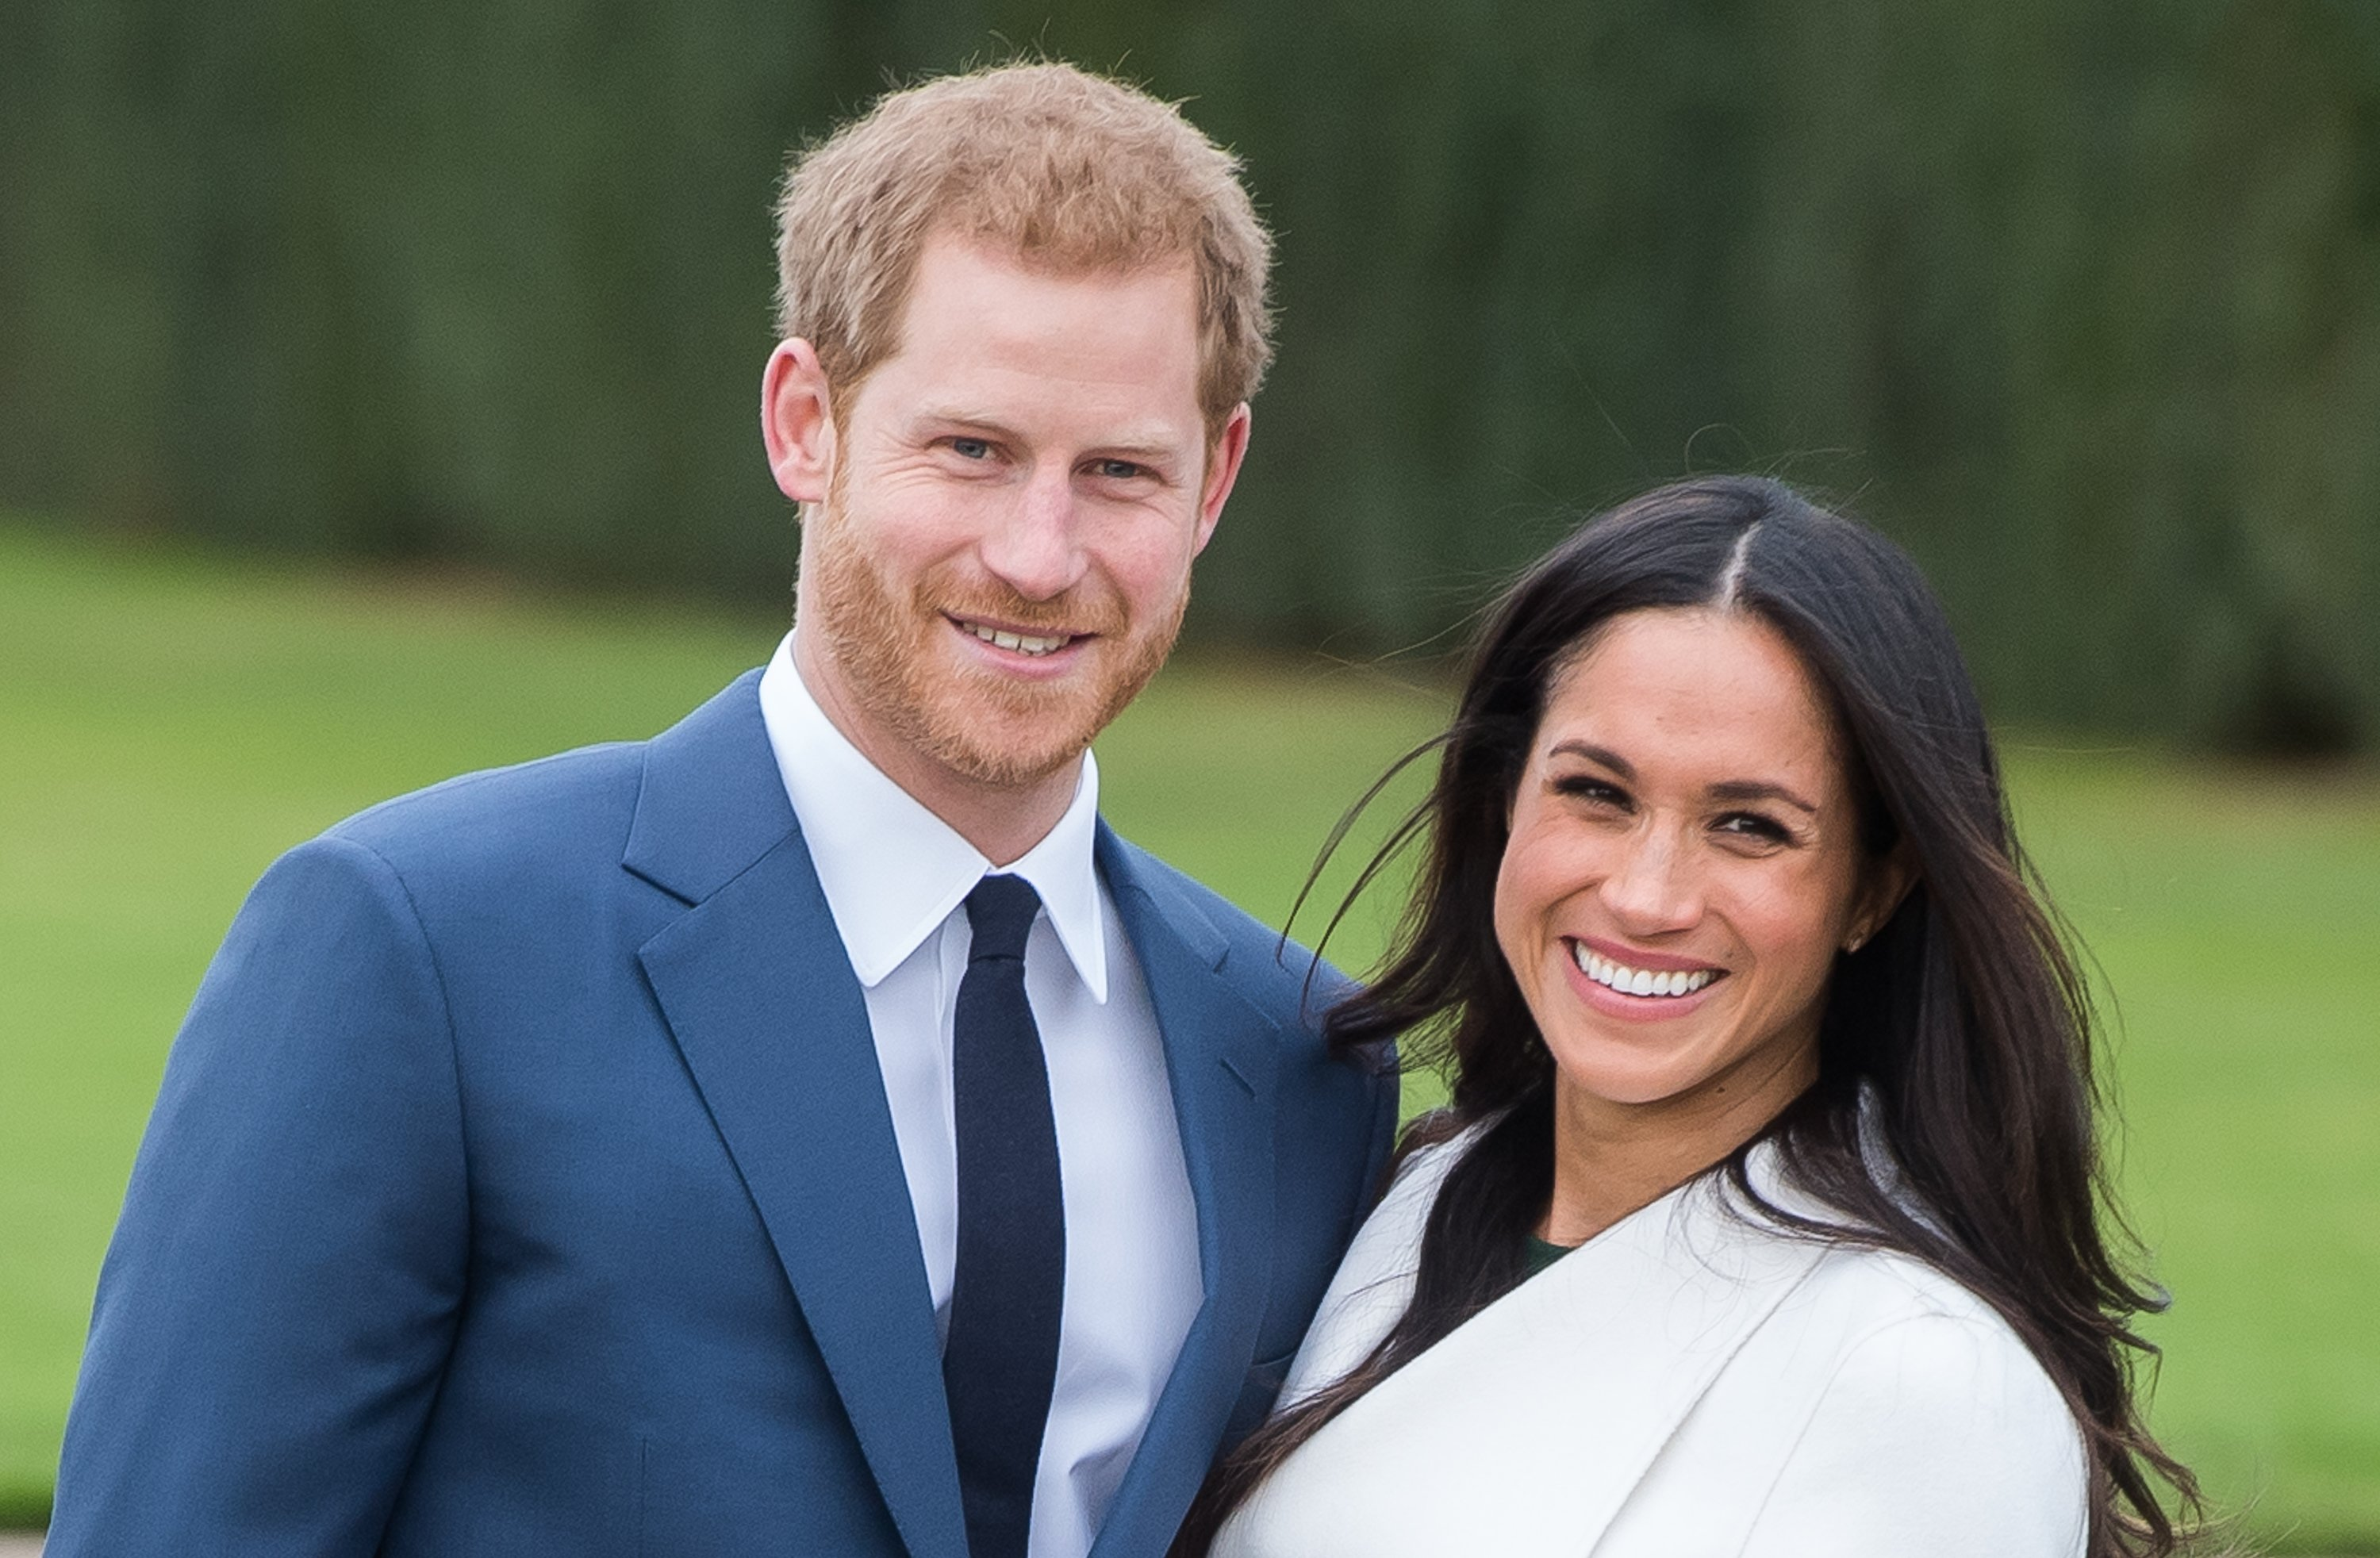 Prince Harry and Meghan Markle during an official photocall at The Sunken Gardens at Kensington Palace on November 27, 2017 in London, England   Photo: Getty Images